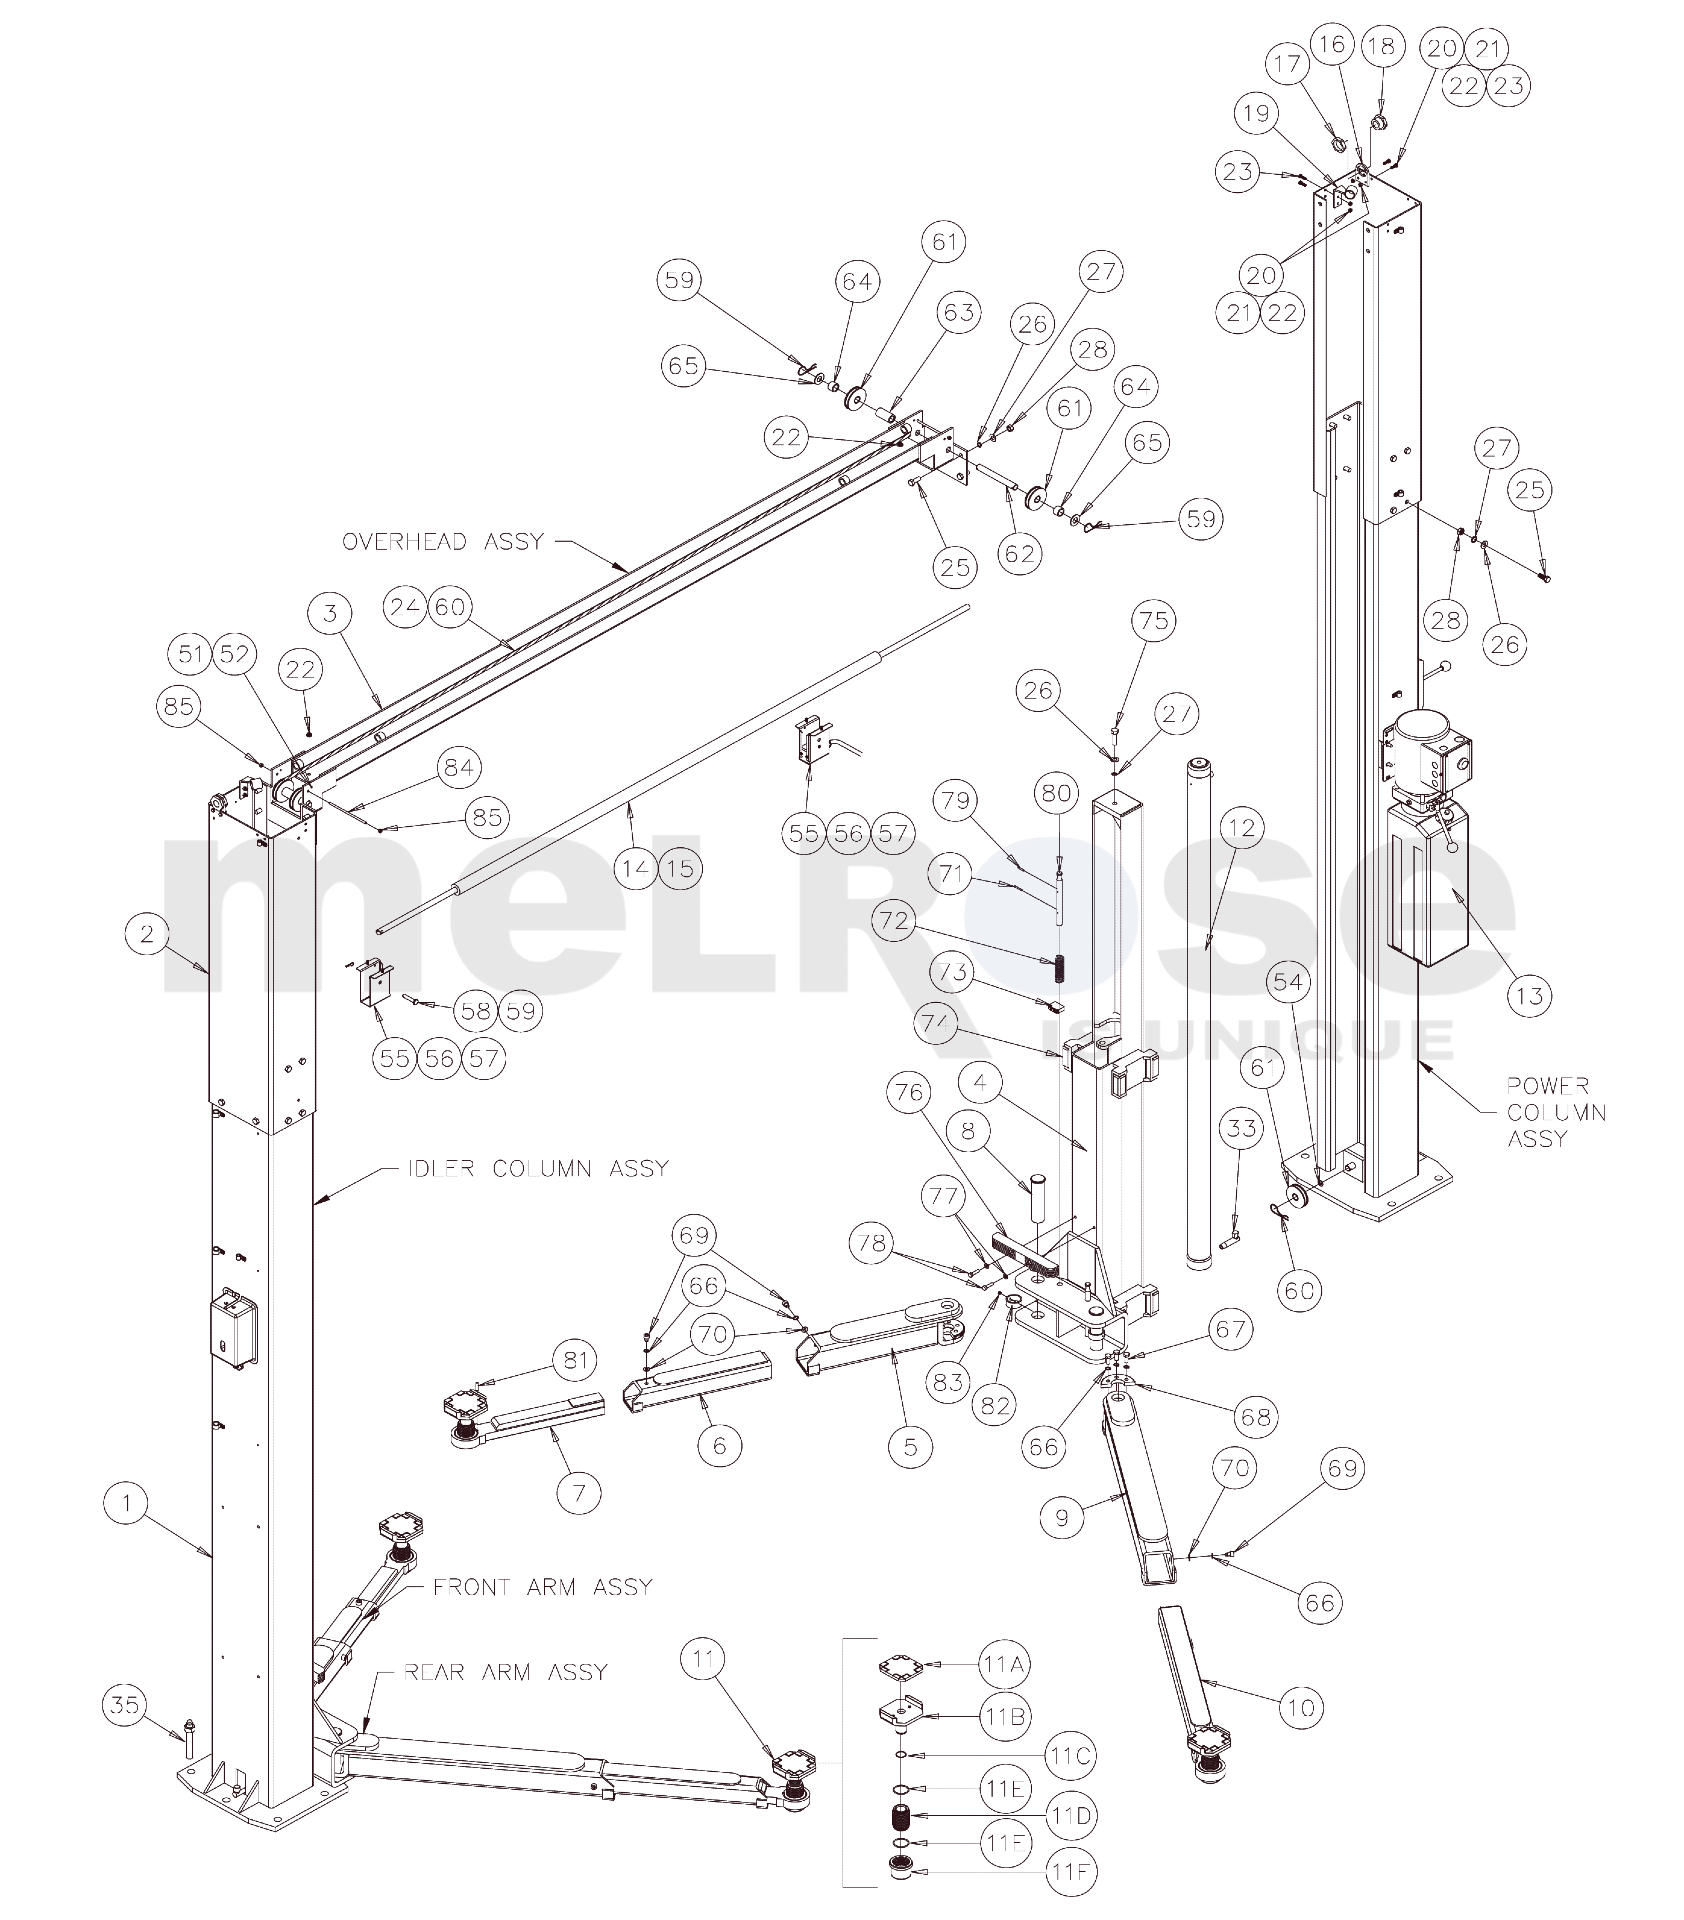 le10-complete-lift-diagram-marked.jpg